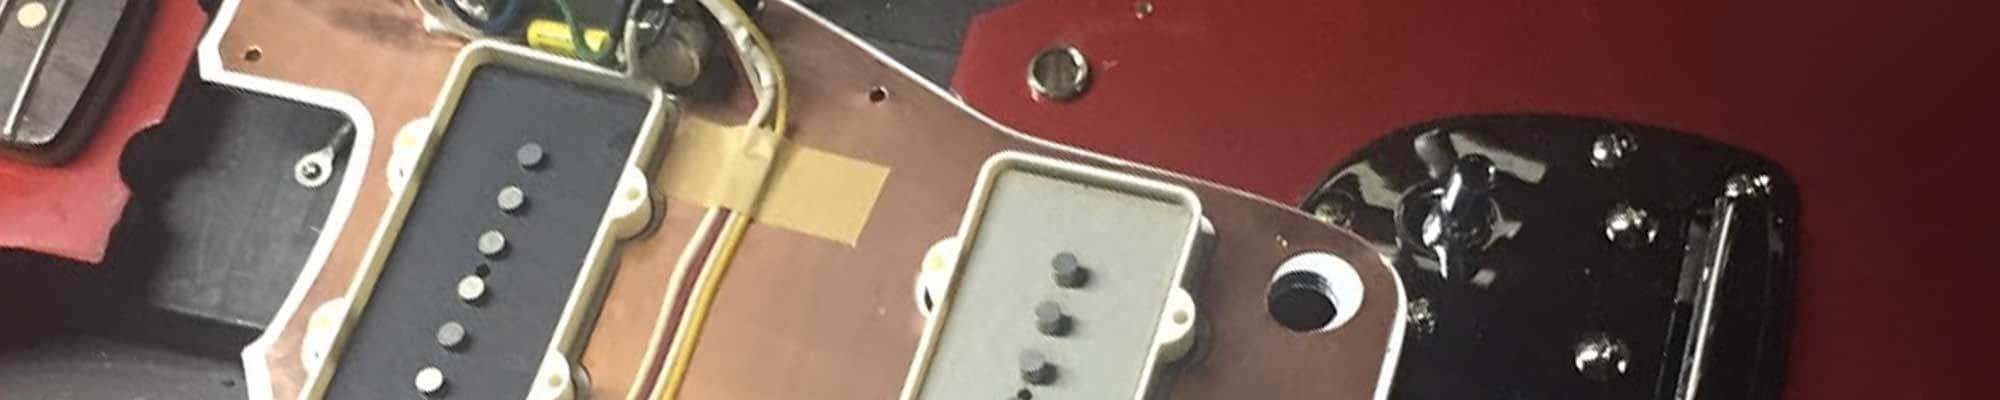 Upgrading Jazzmaster Electronics Unleash The Potential Reverb News Fender Mexican Stratocaster Wiring Diagram